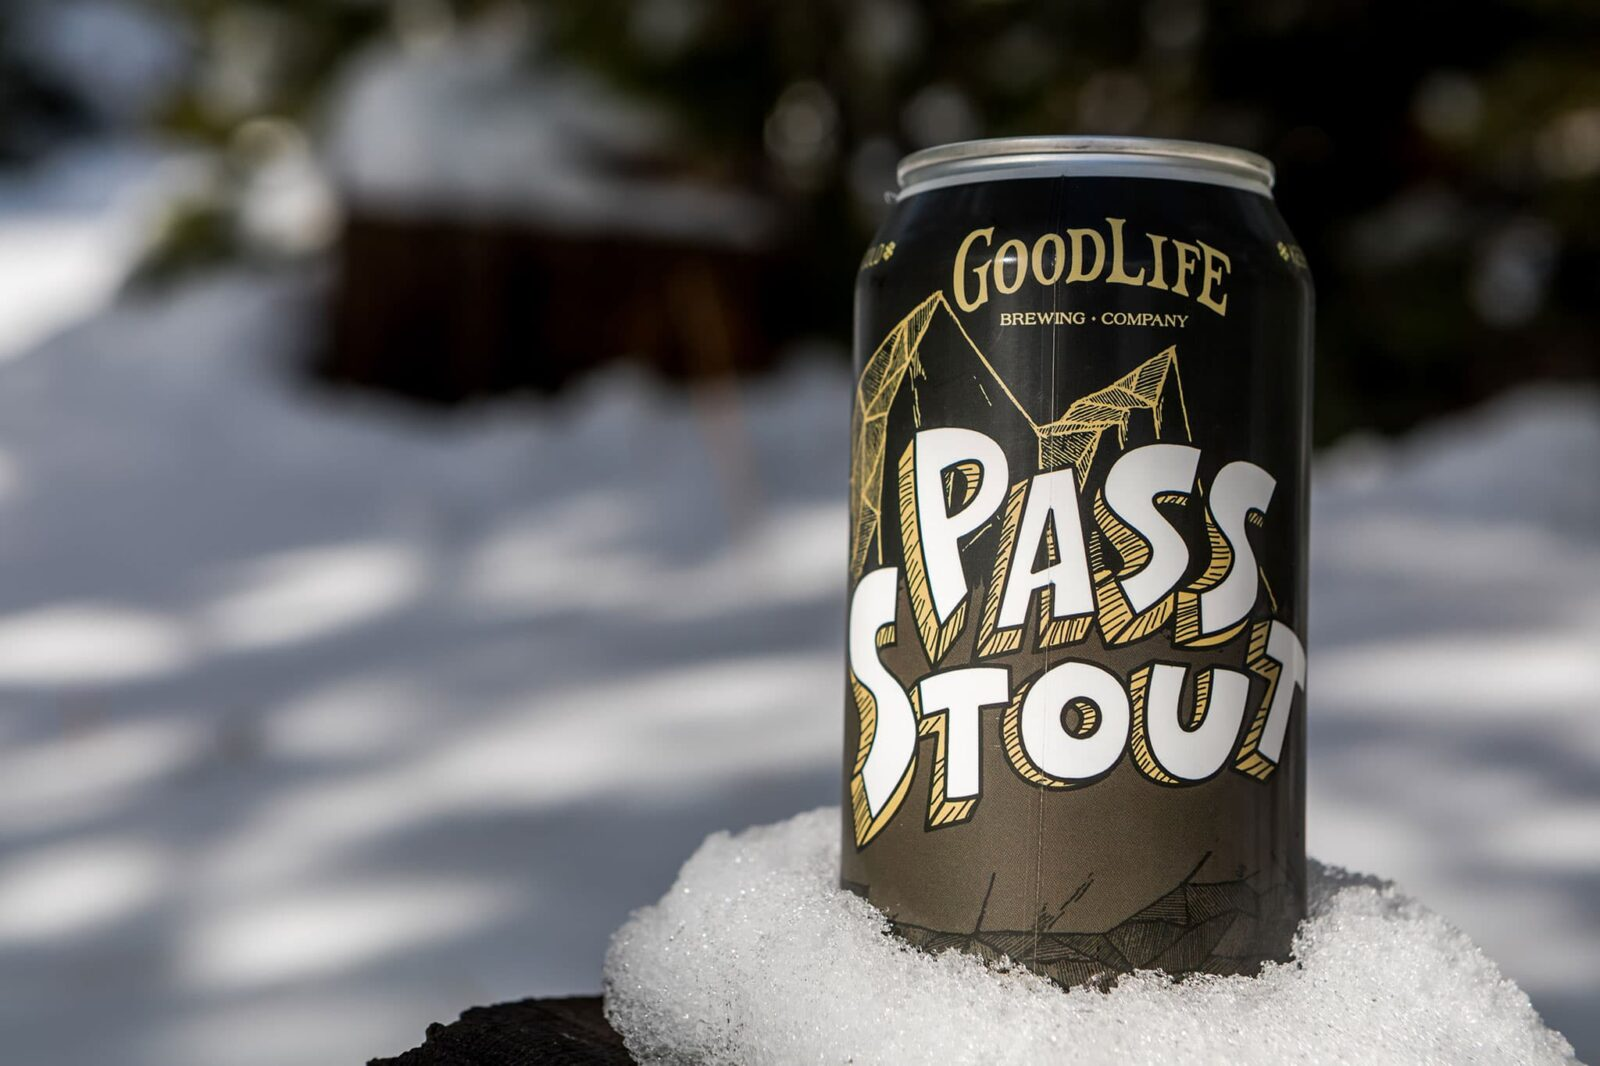 Beer can in the snow